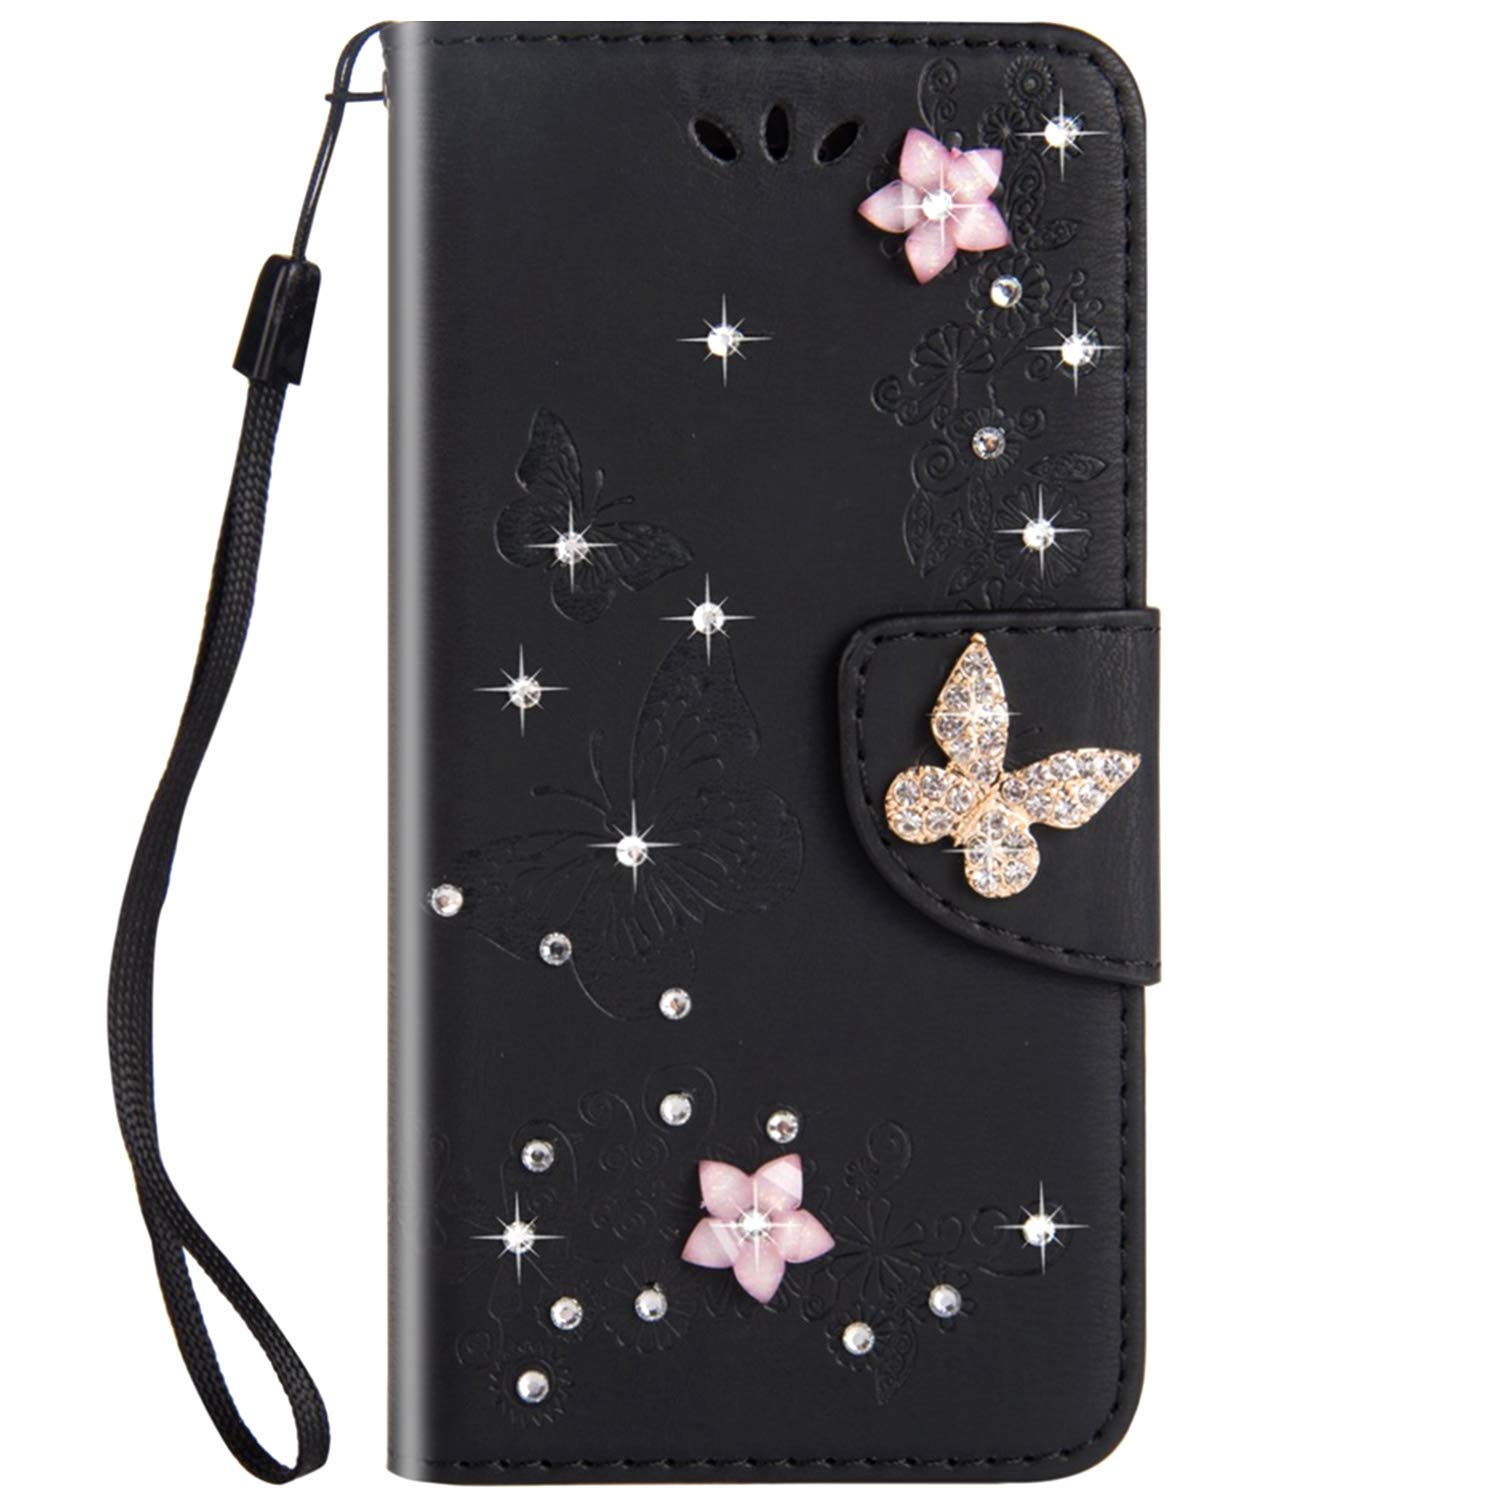 JAWSEU Case Flip Compatible with Sony Xperia XZ1 Compact, PU Leather Wallet Folio Full Body Cover 3D Bling Sparkly Diamonds Butterfly Design Front and Back Magnetic Closure Card Slots Case,Black